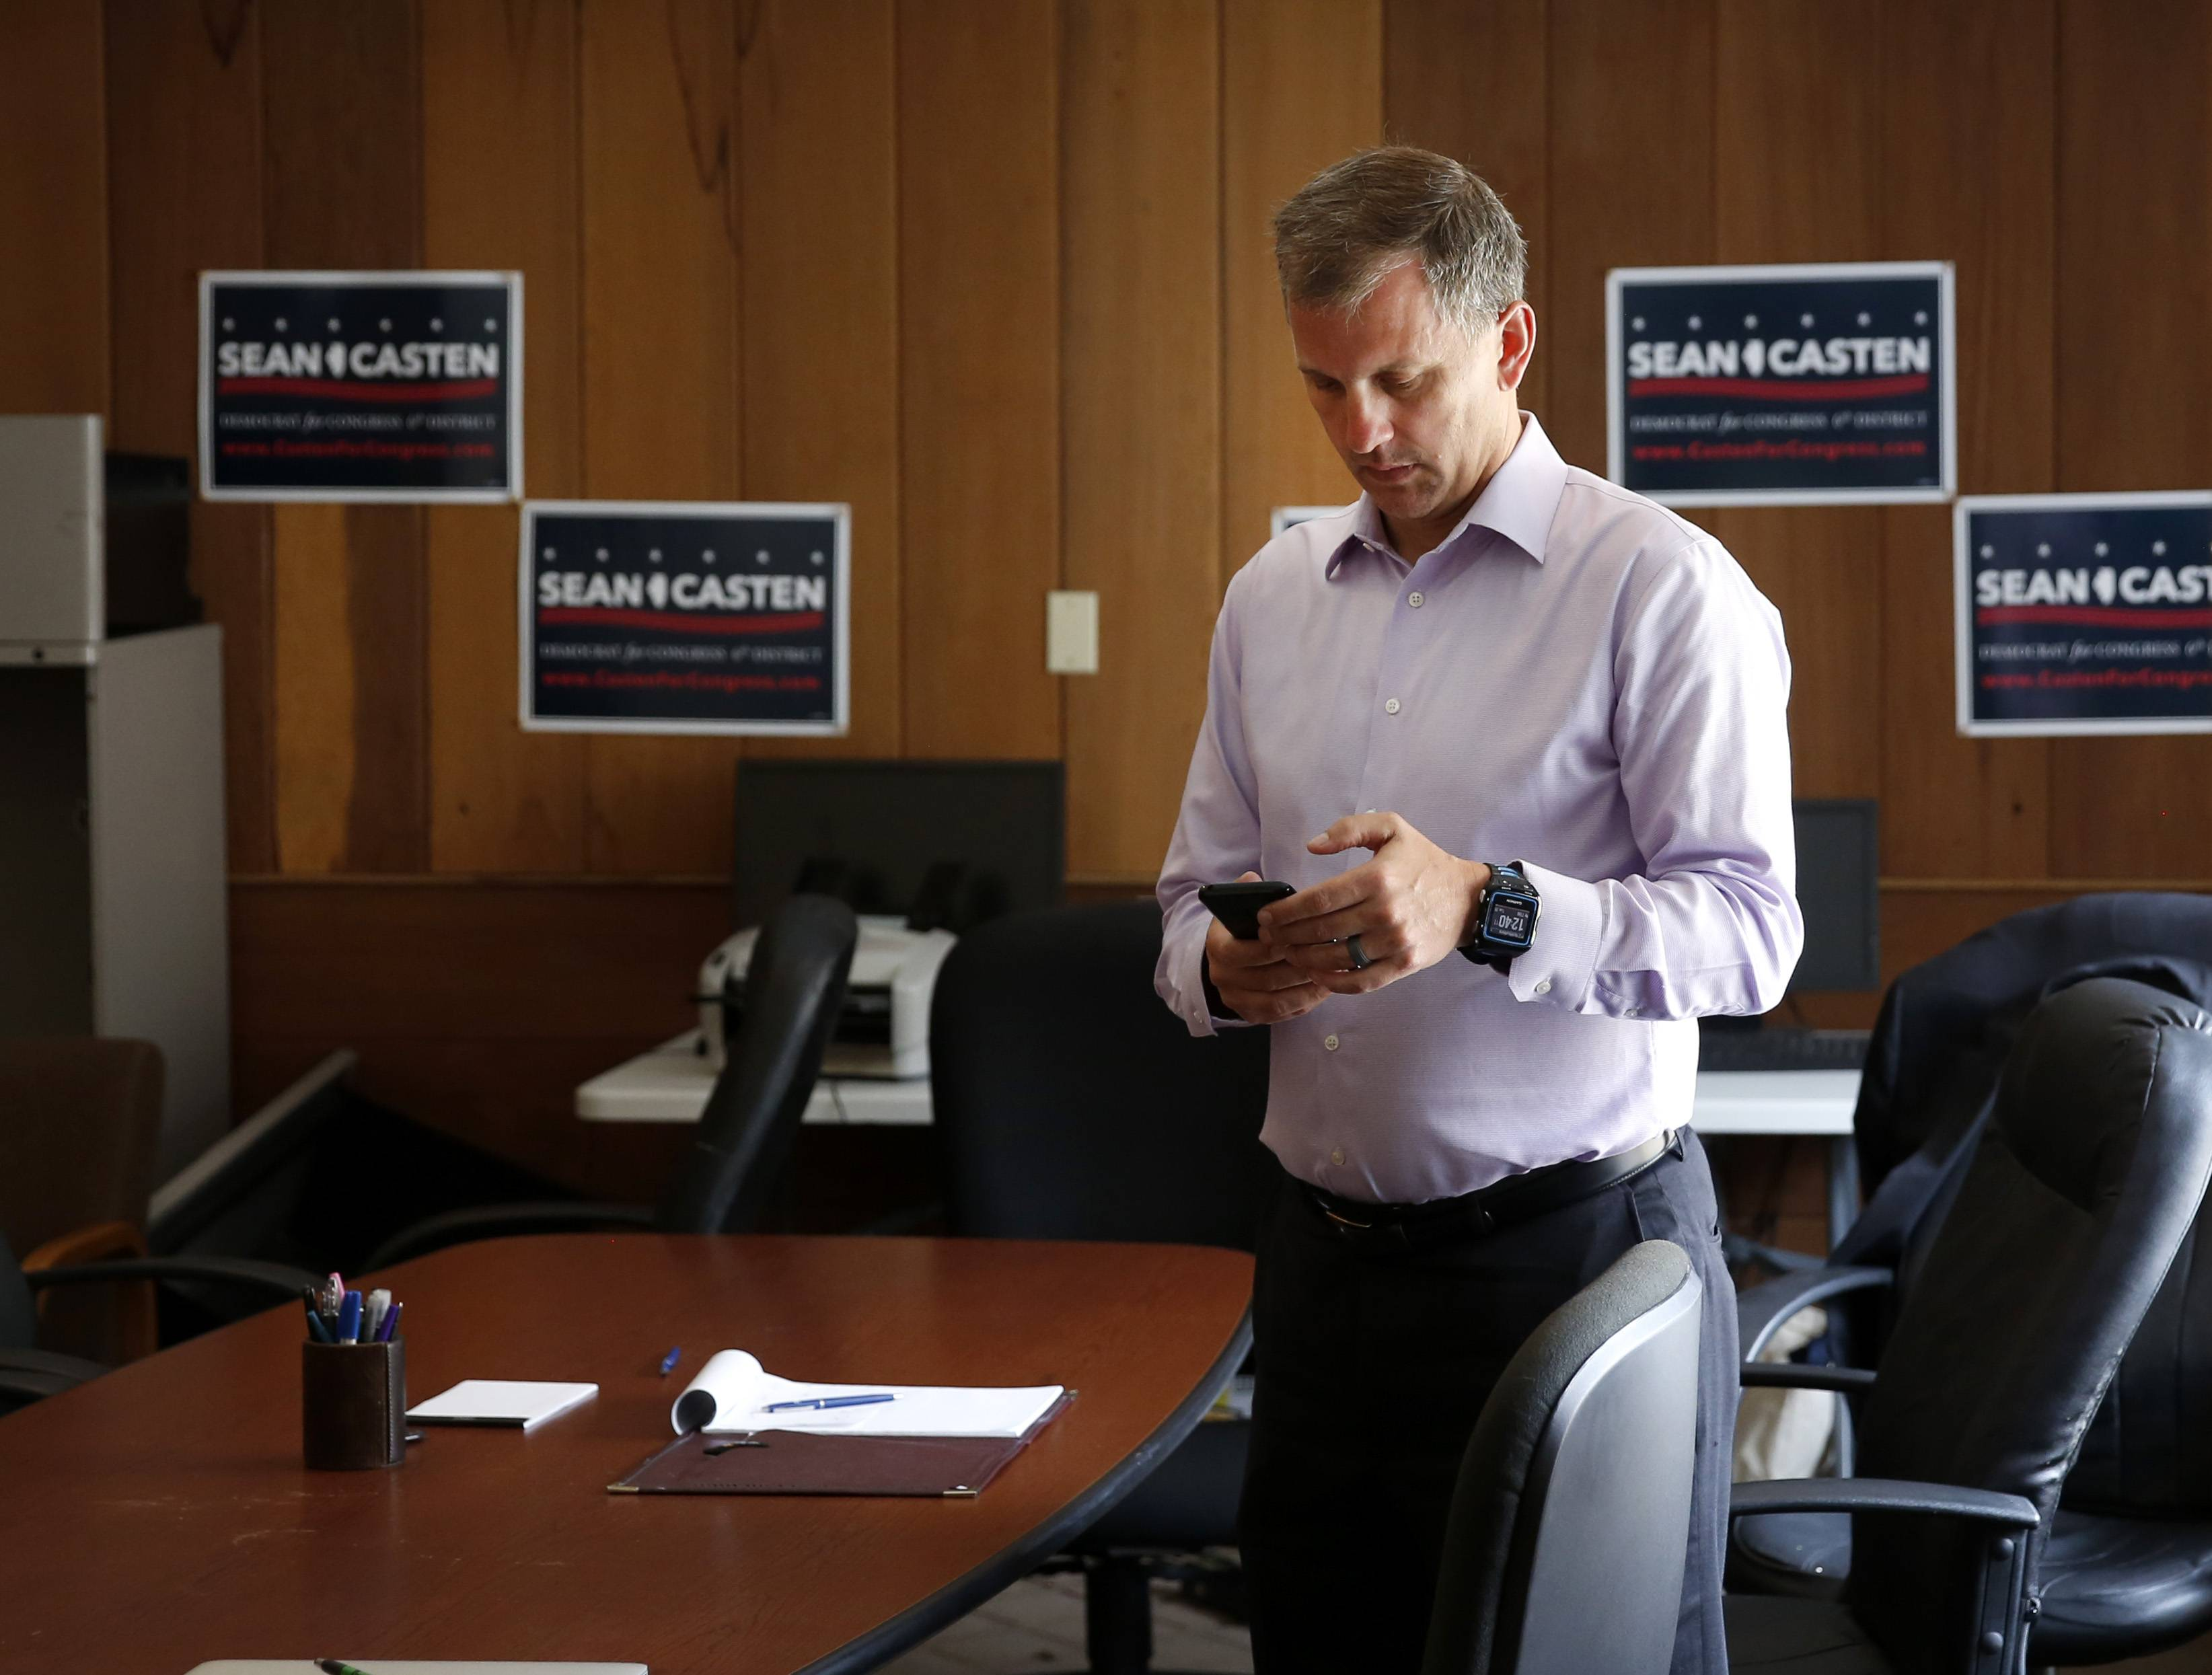 Sean Casten checks his messages after meeting with members of a constituent group about health care concerns during a summer day on the campaign trail.